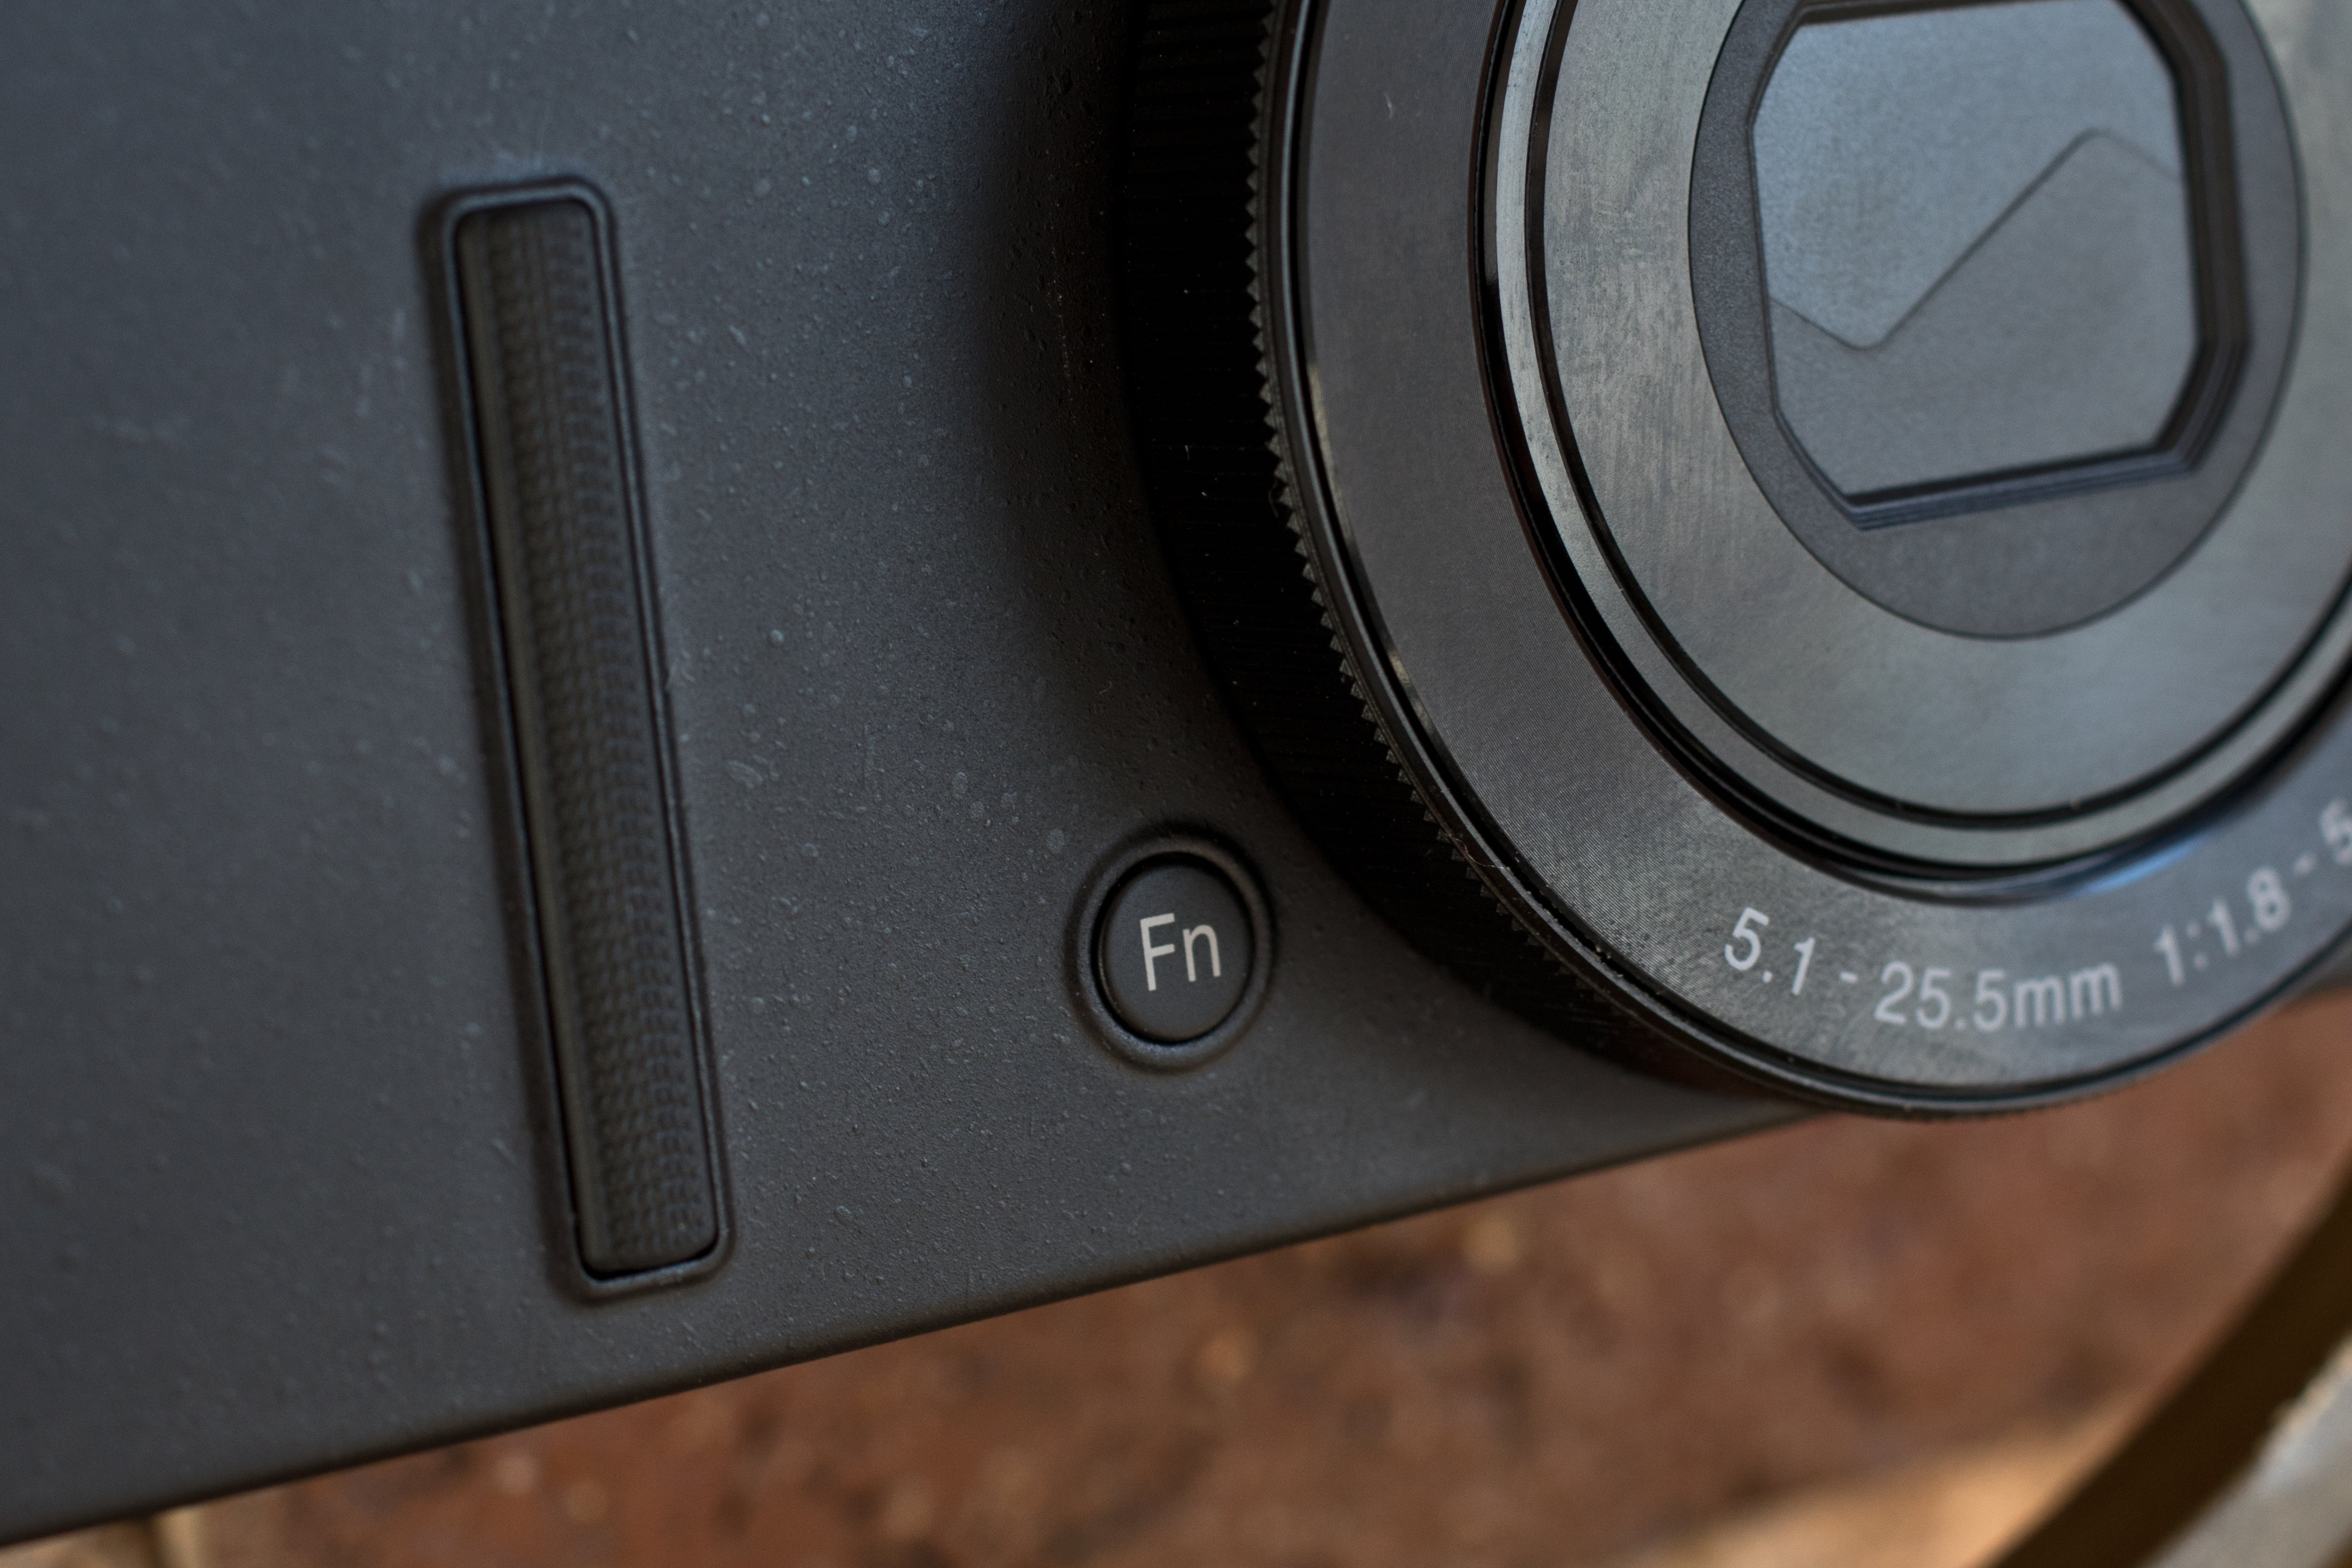 A photograph of the Nikon Coolpix P340's function button.